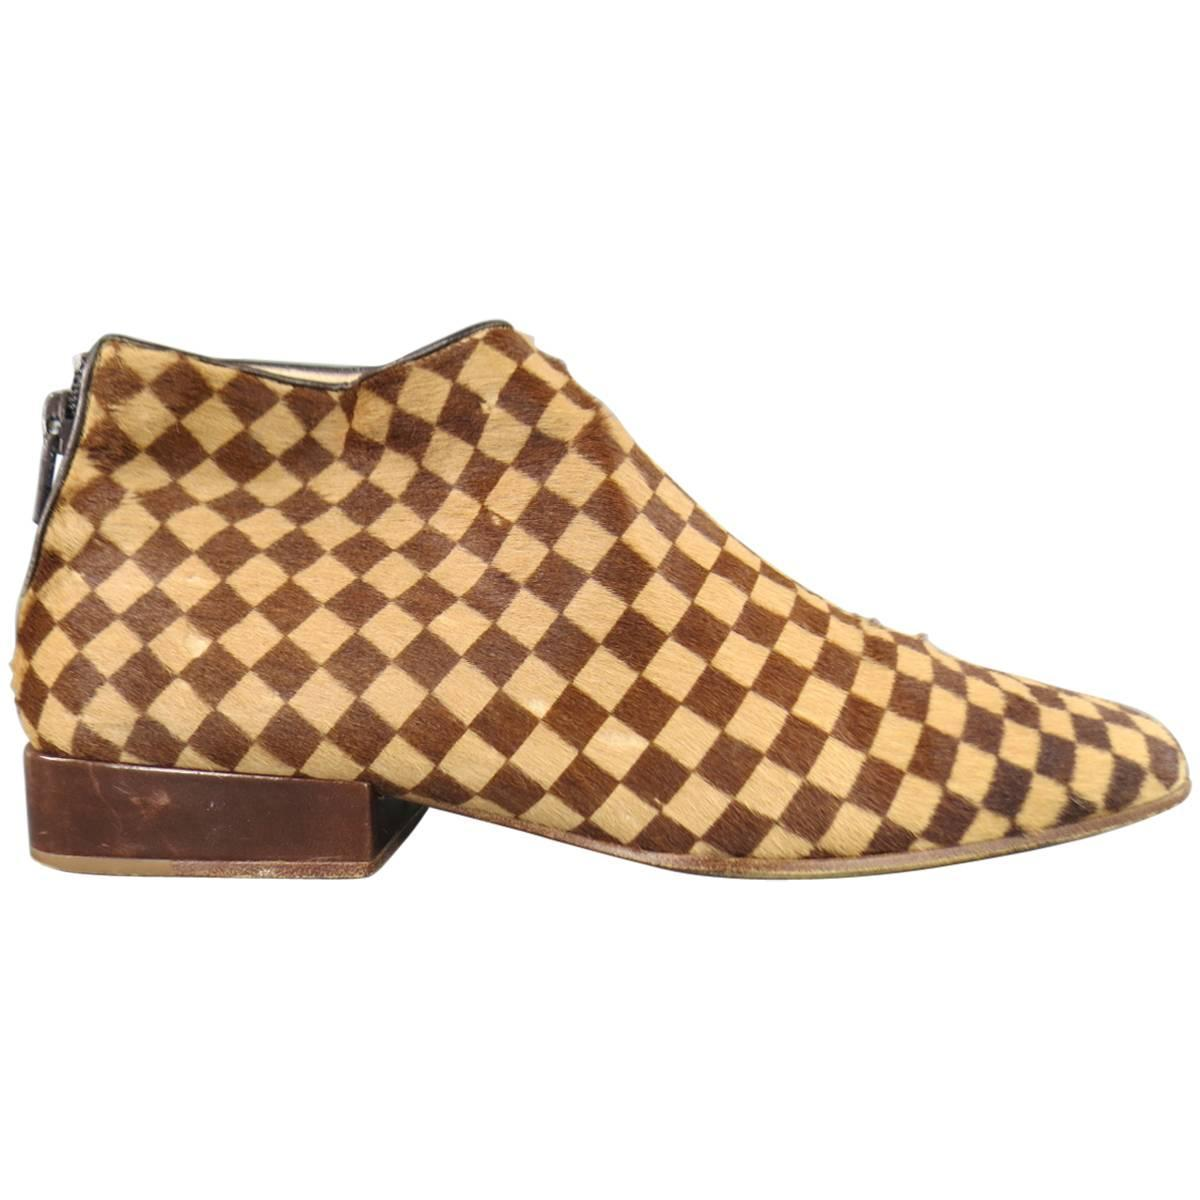 Louis Vuitton Size 7 Beige And Brown Checkered Pony Hair